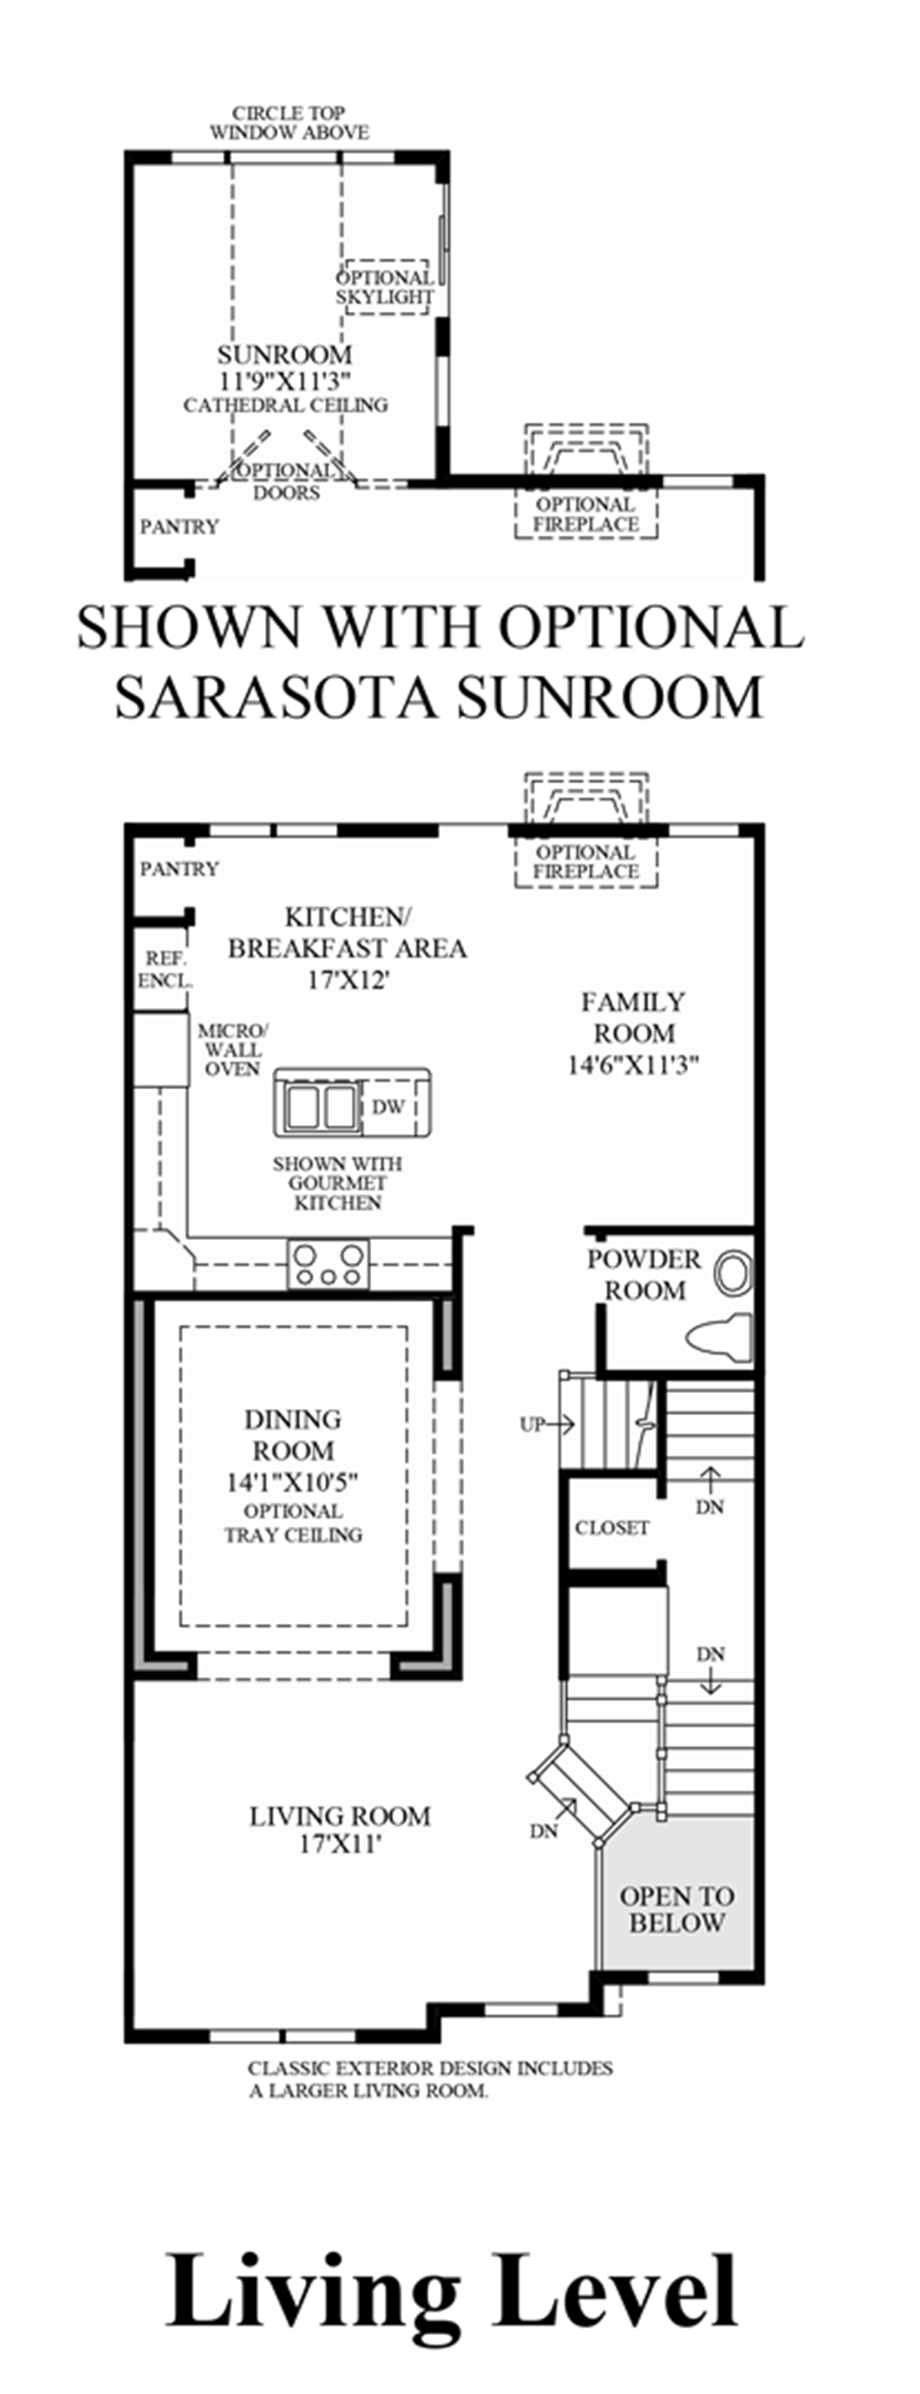 Living Level (Lower Level Entry) Floor Plan